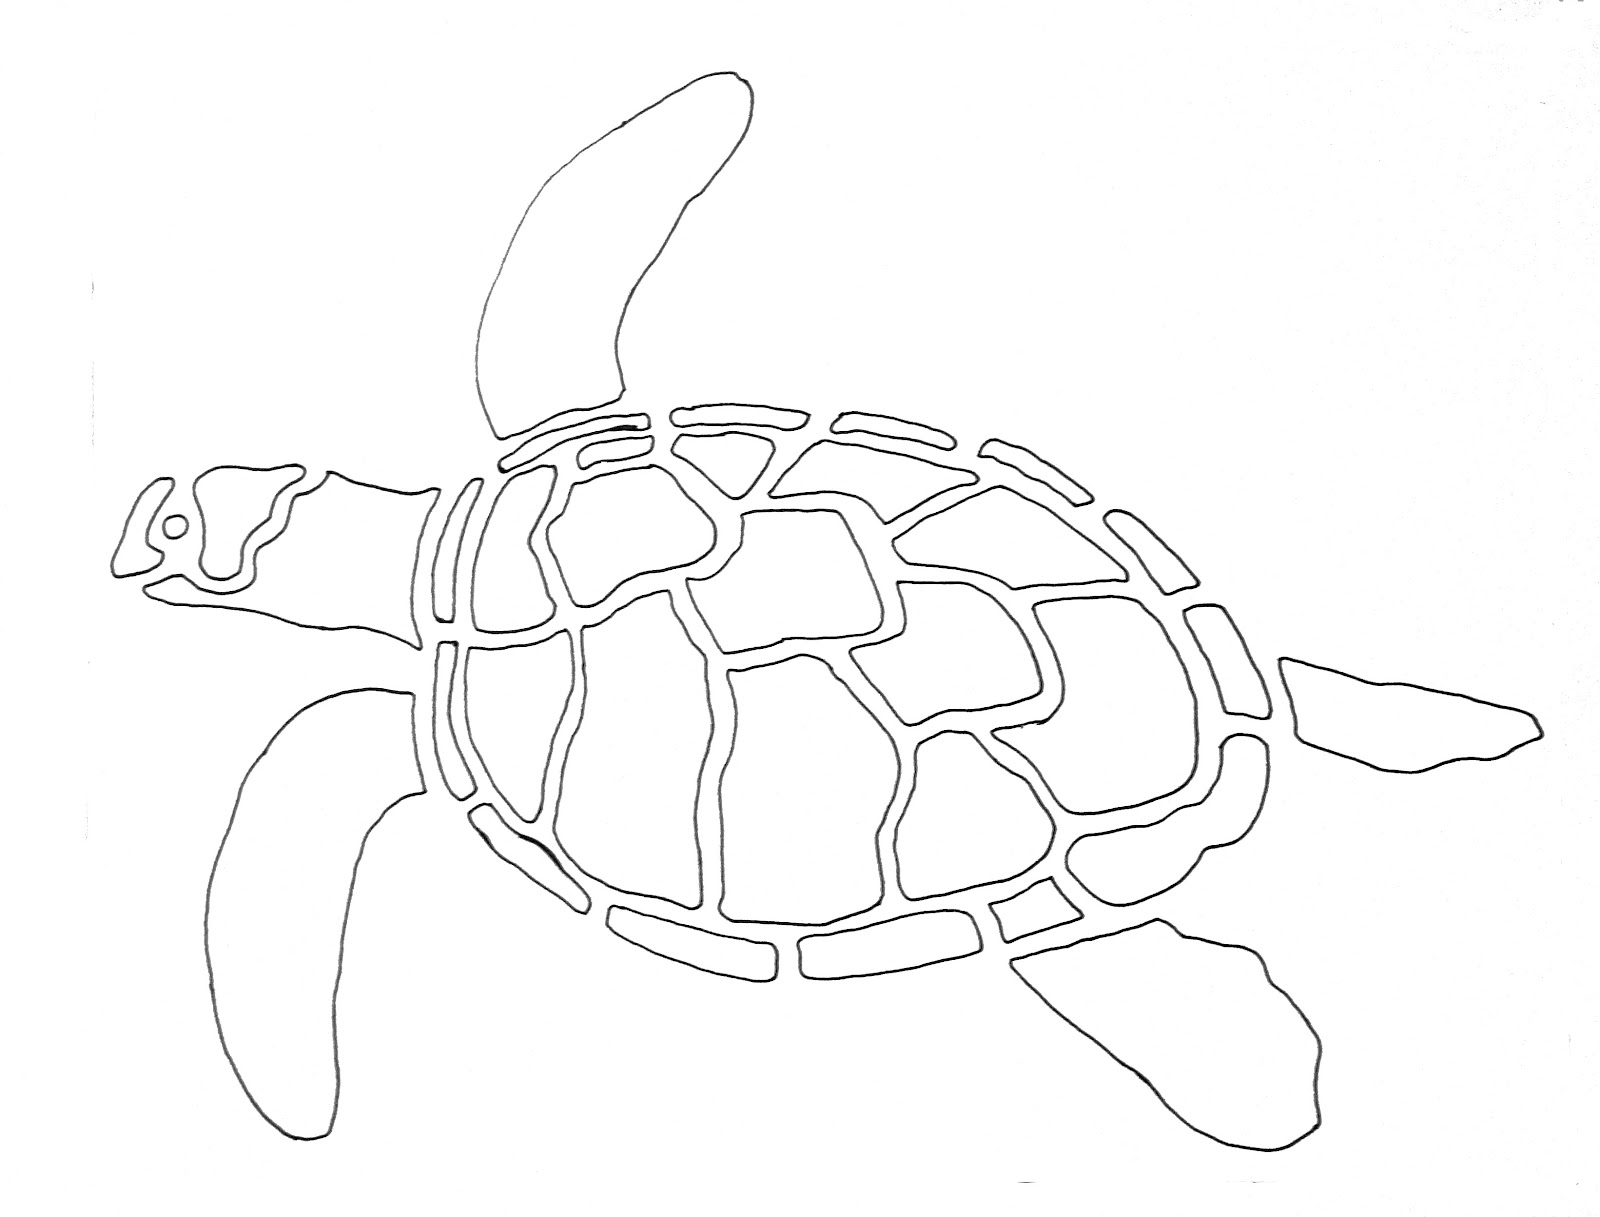 Template For A Green Sea Turtle Drawing Pictures to Pin on